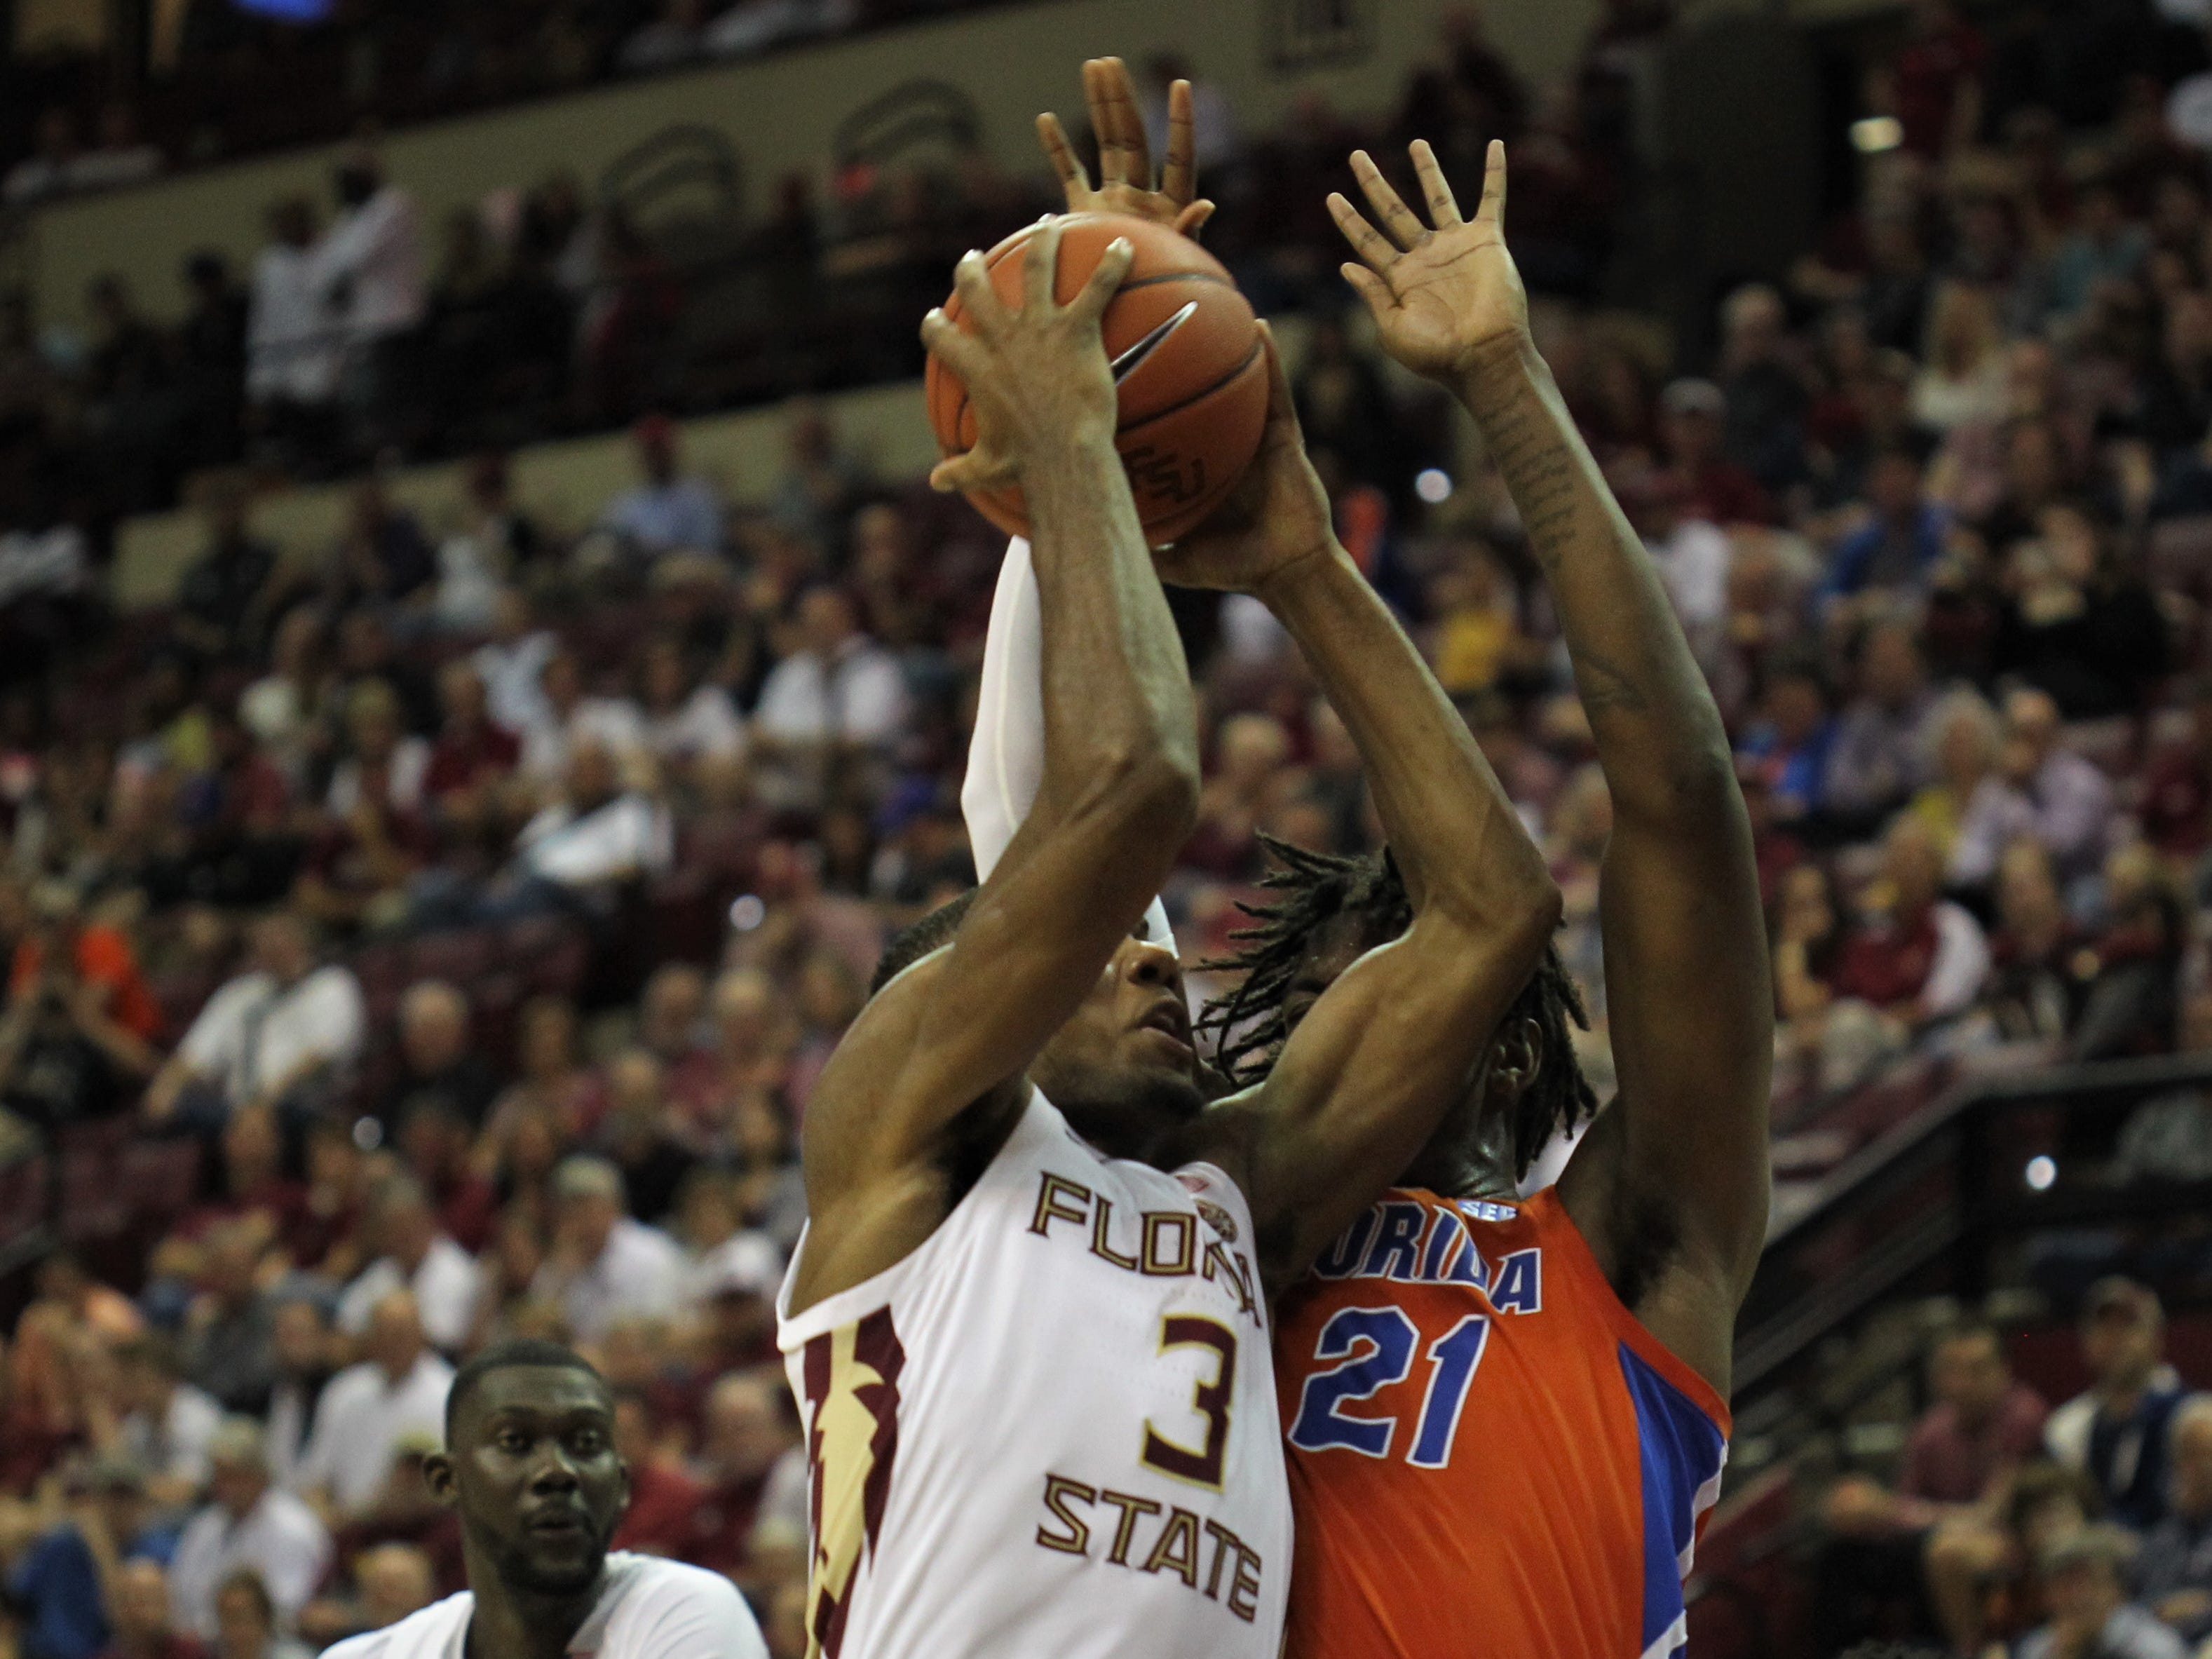 Florida State's Trent Forrest goes up for a basket against Florida's Dontay Bassett during the Sunshine Showdown game Tuesday at the Tucker Civic Center.